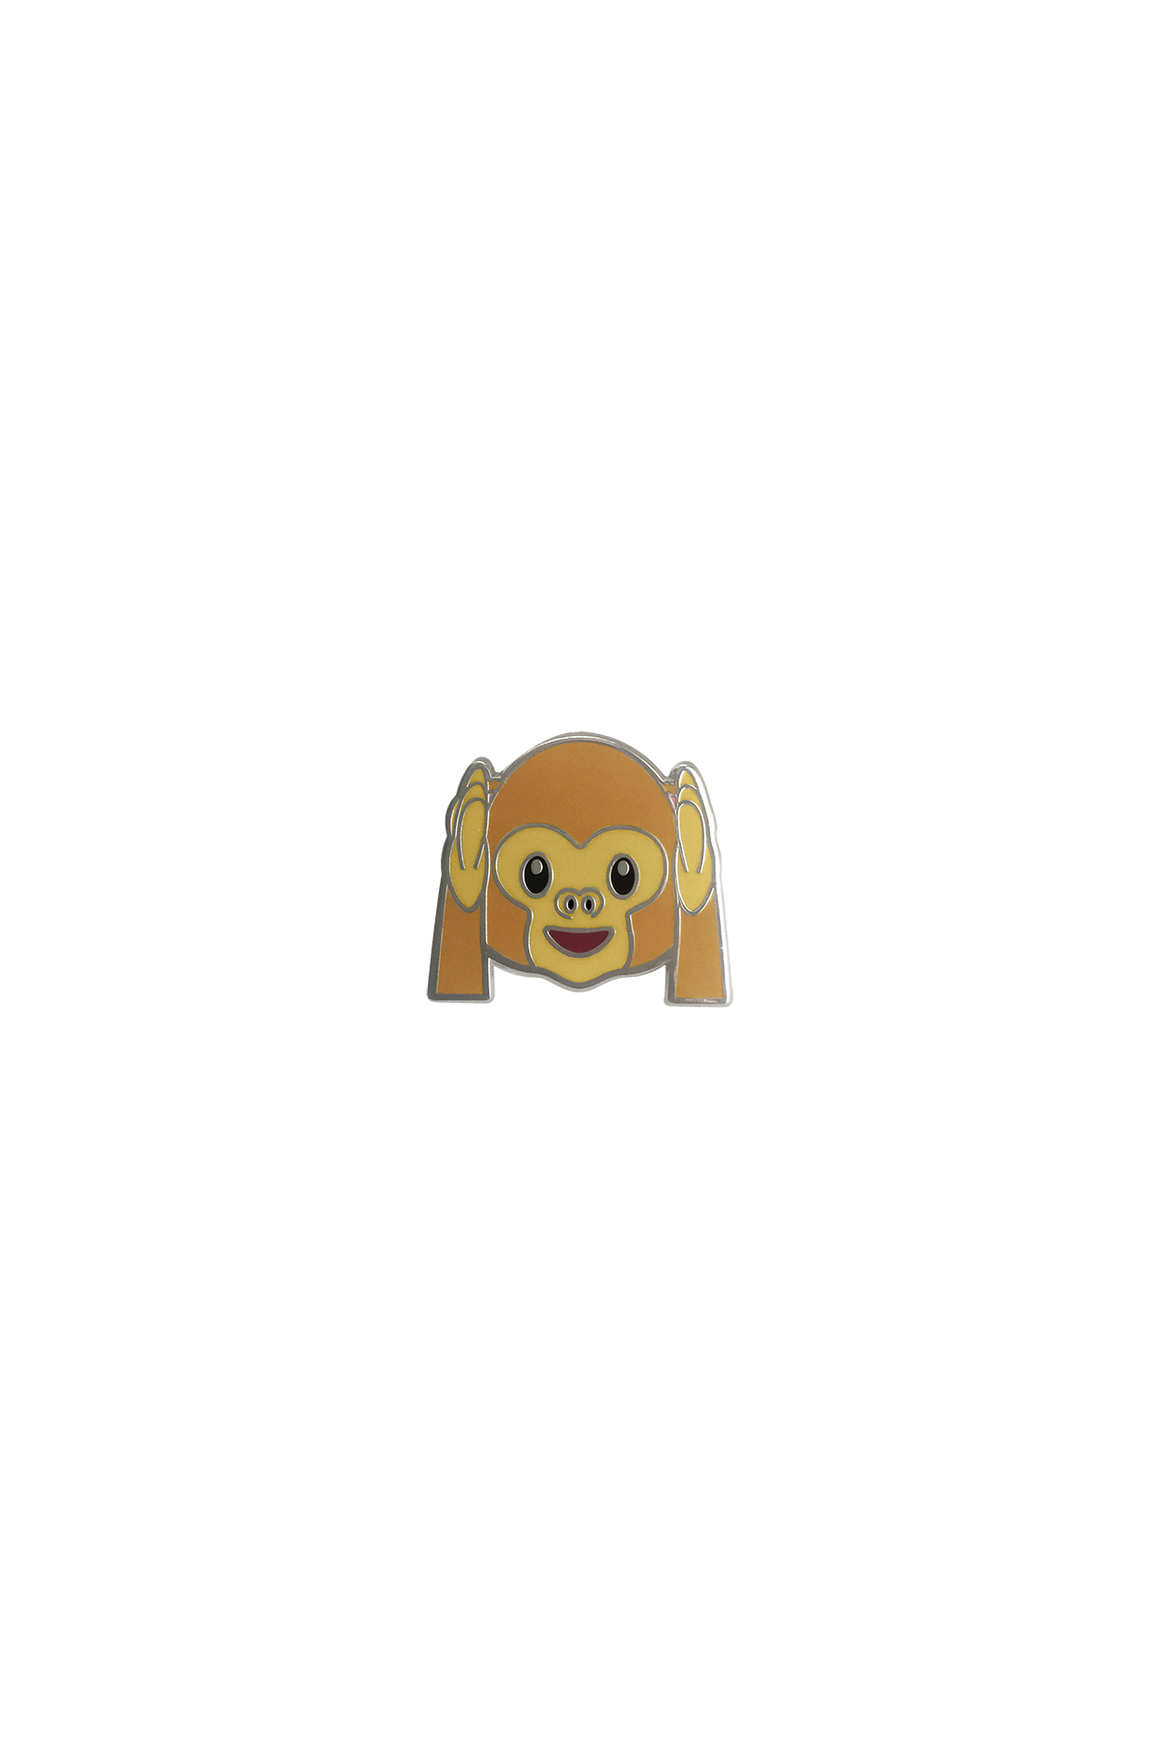 Hear No Evil Emoji Lapel Pin - Philistine